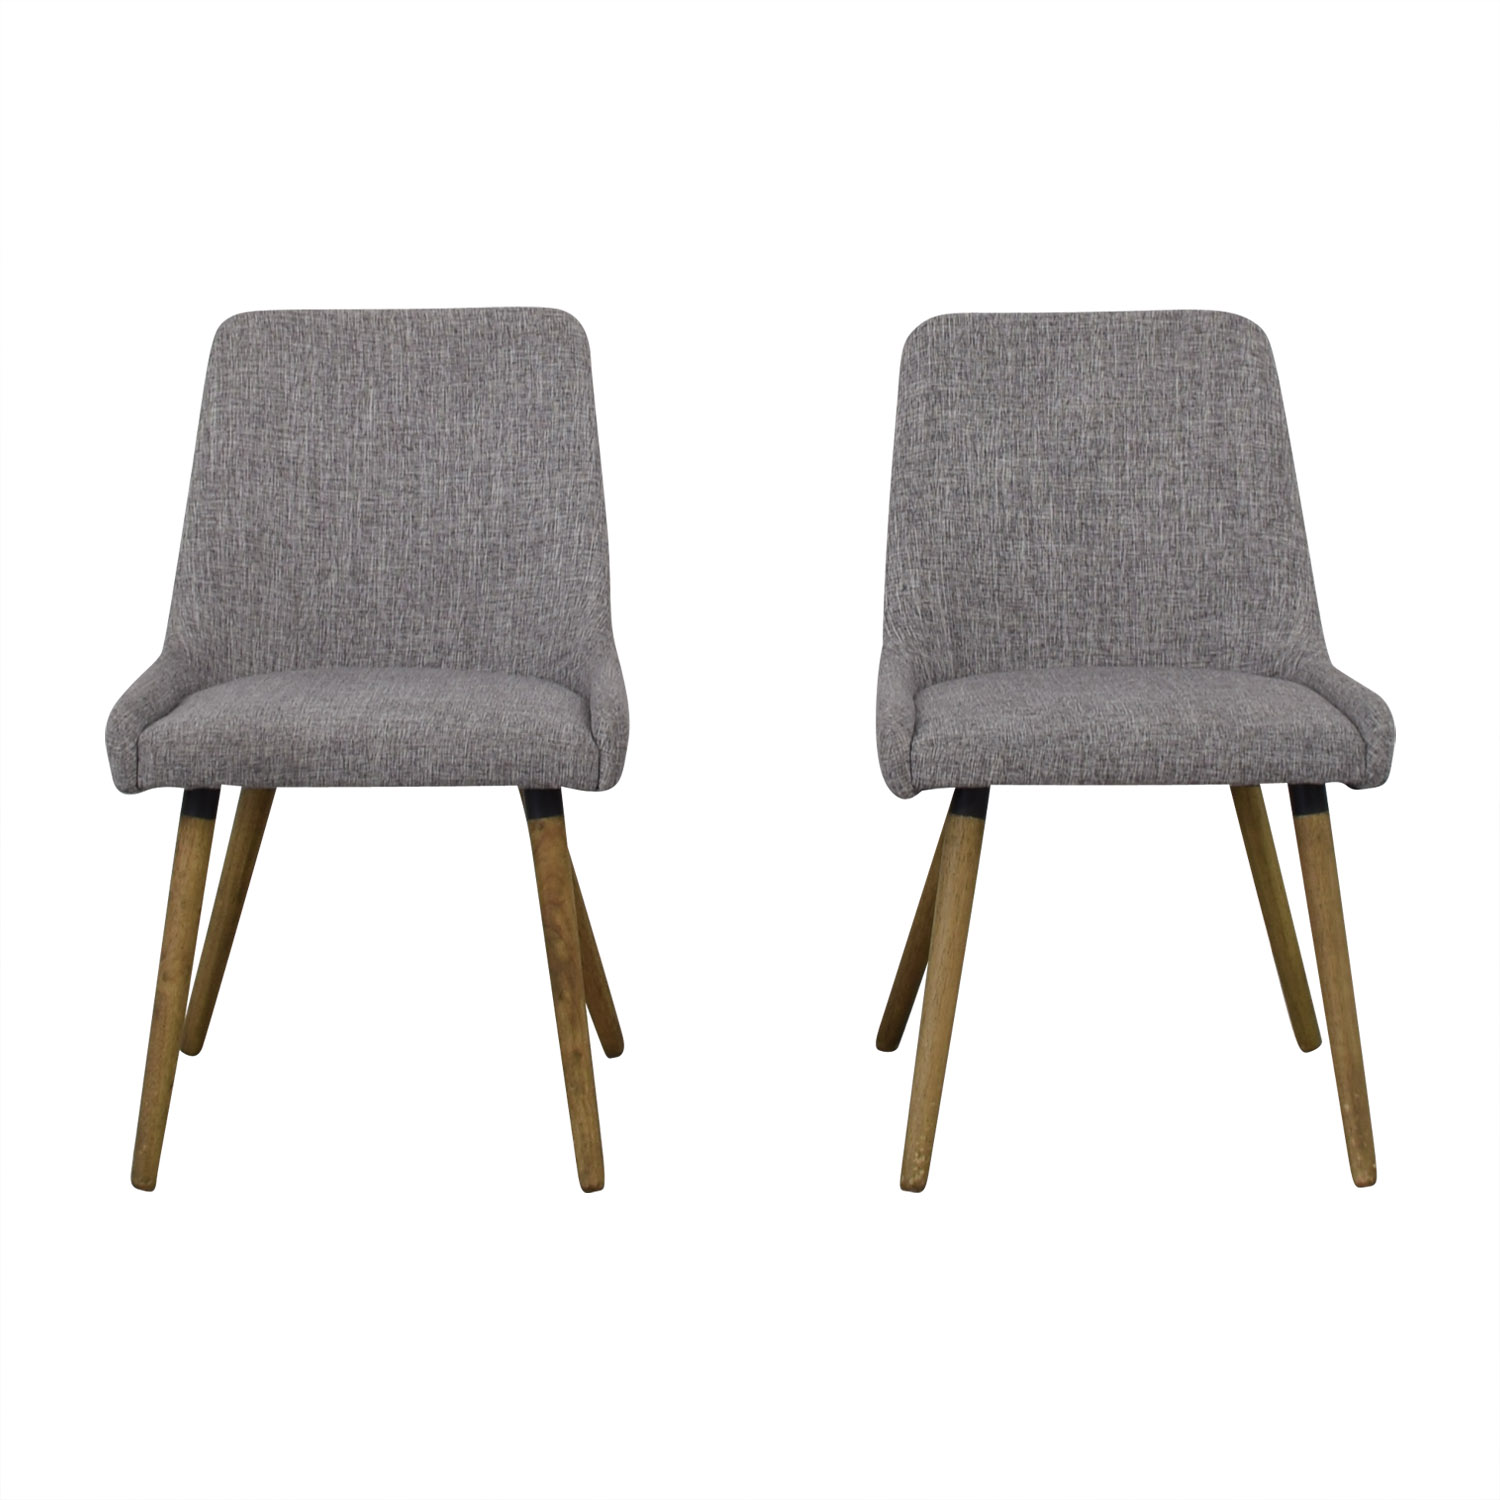 West Elm Mid Century Upholstered Dining Chairs / Dining Chairs